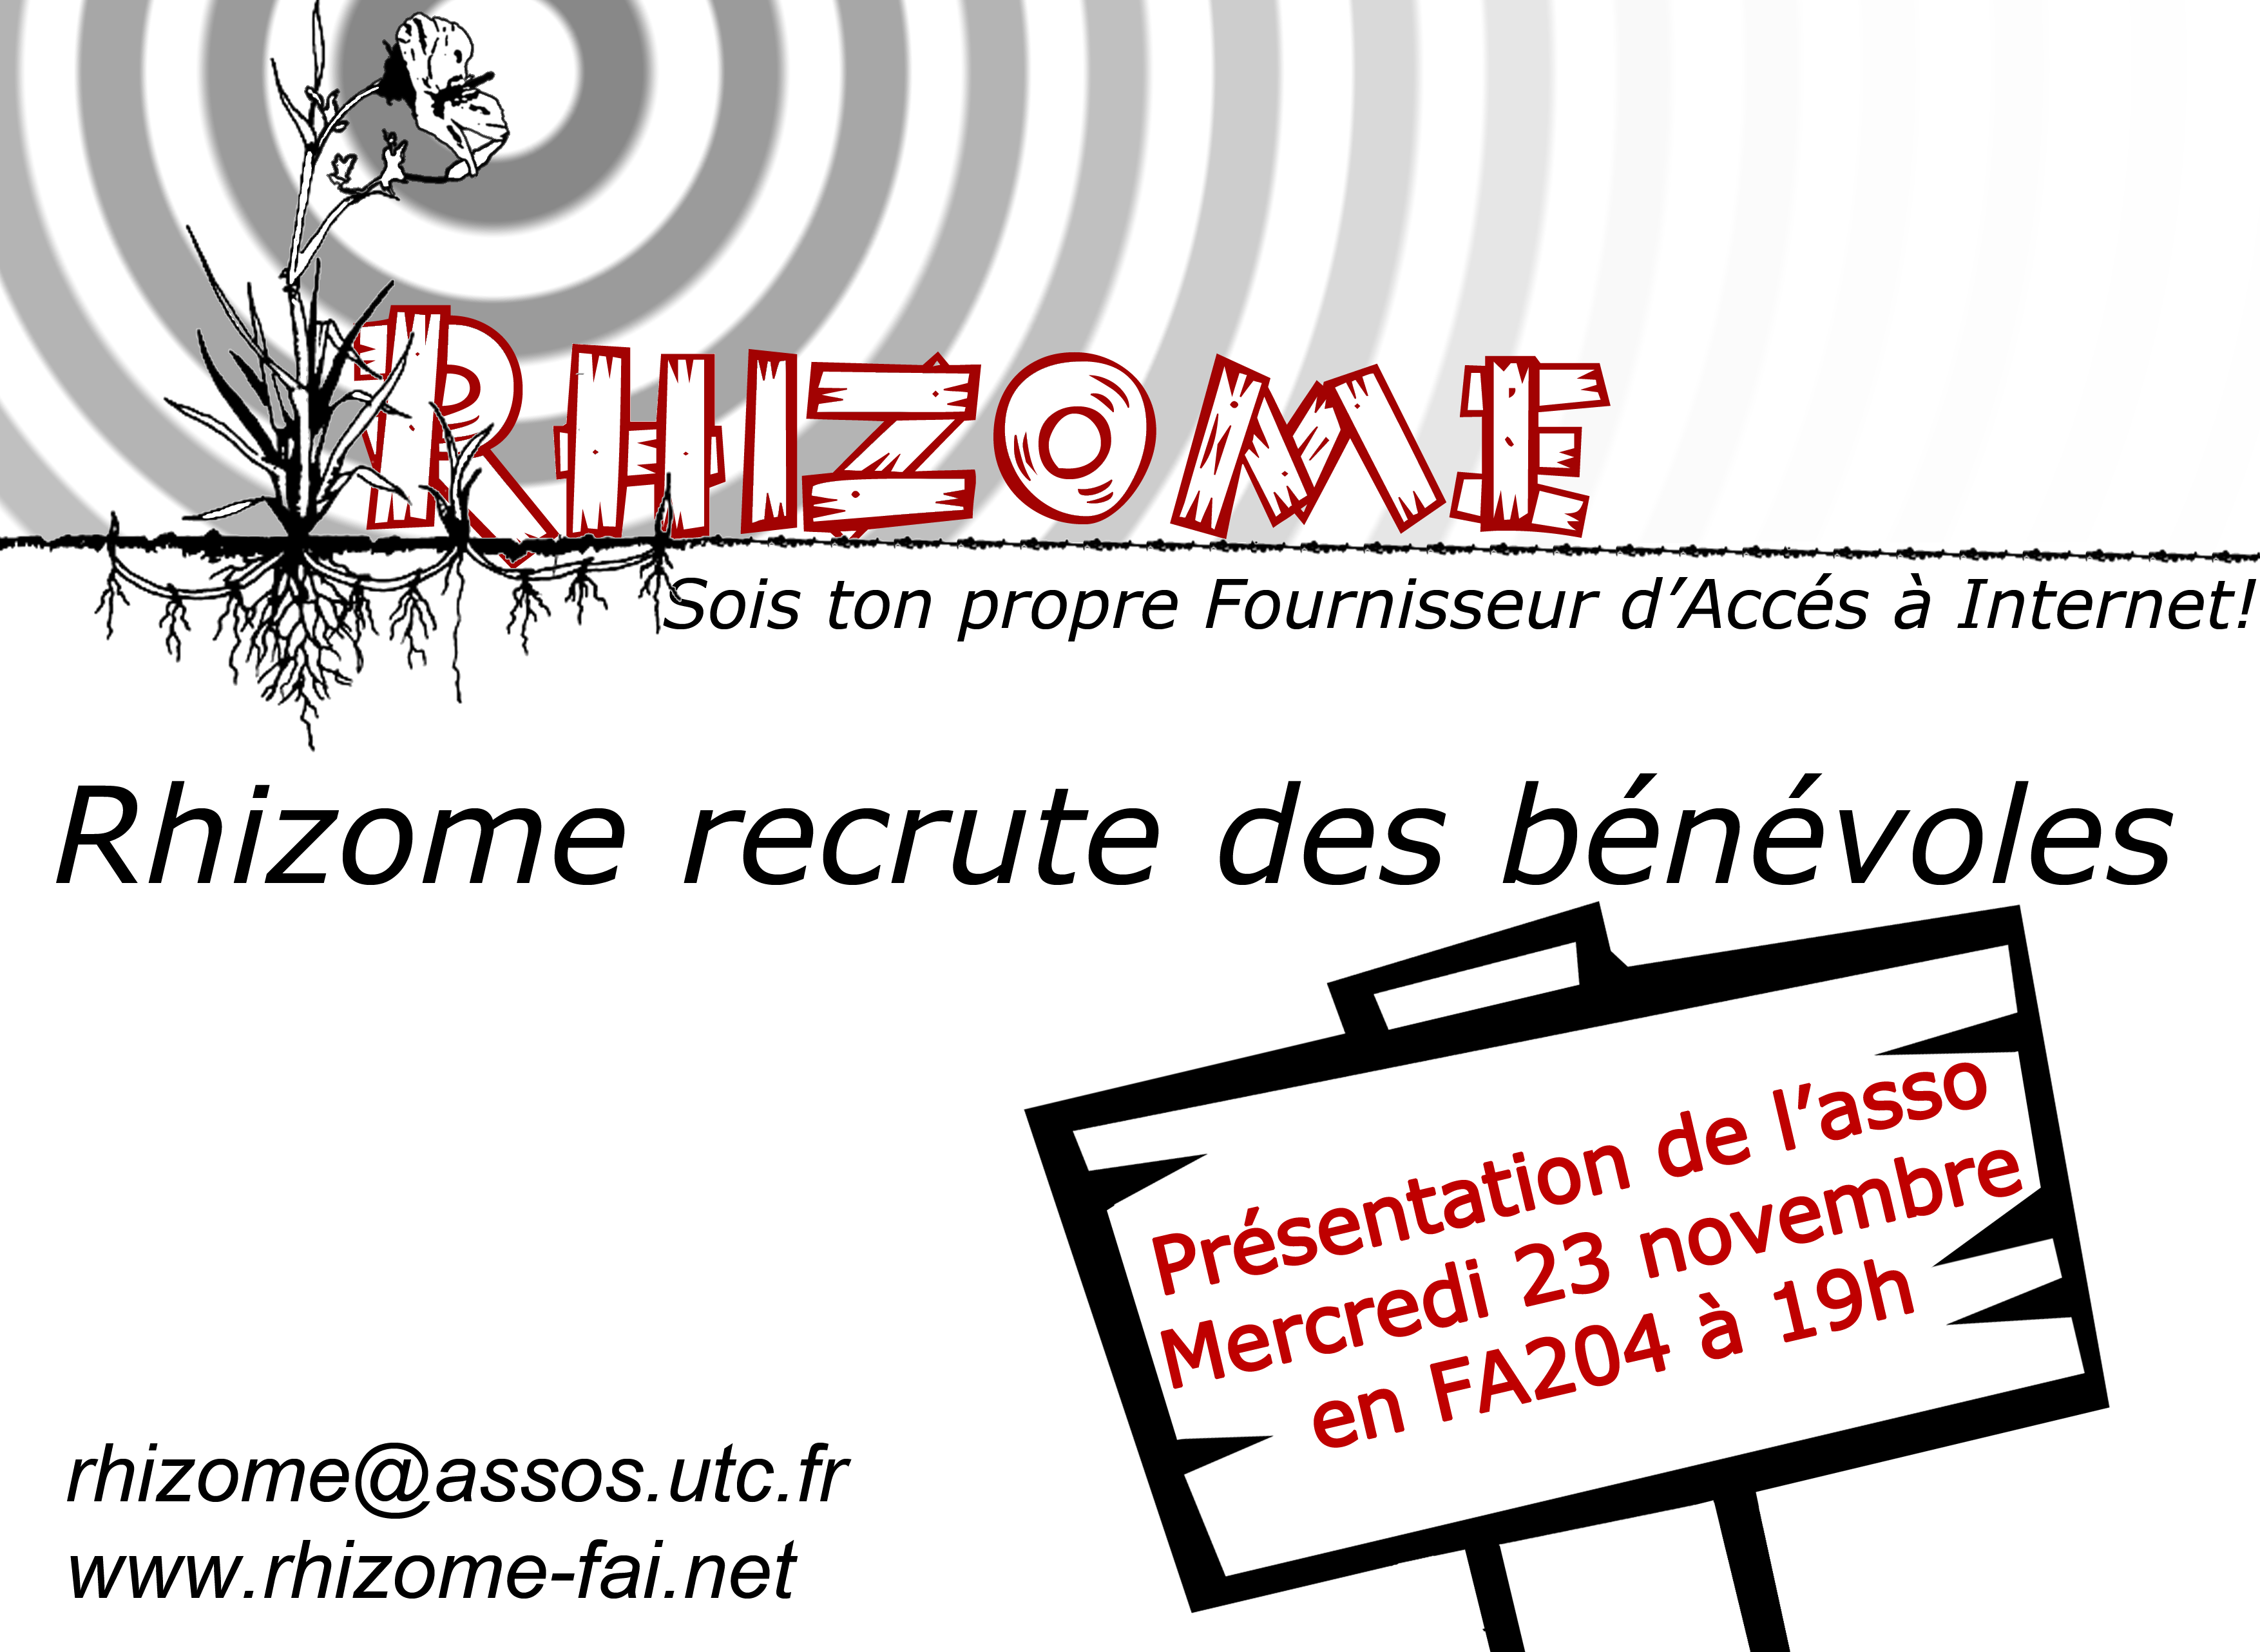 polar-screen-recrutement-2011-11-21.png